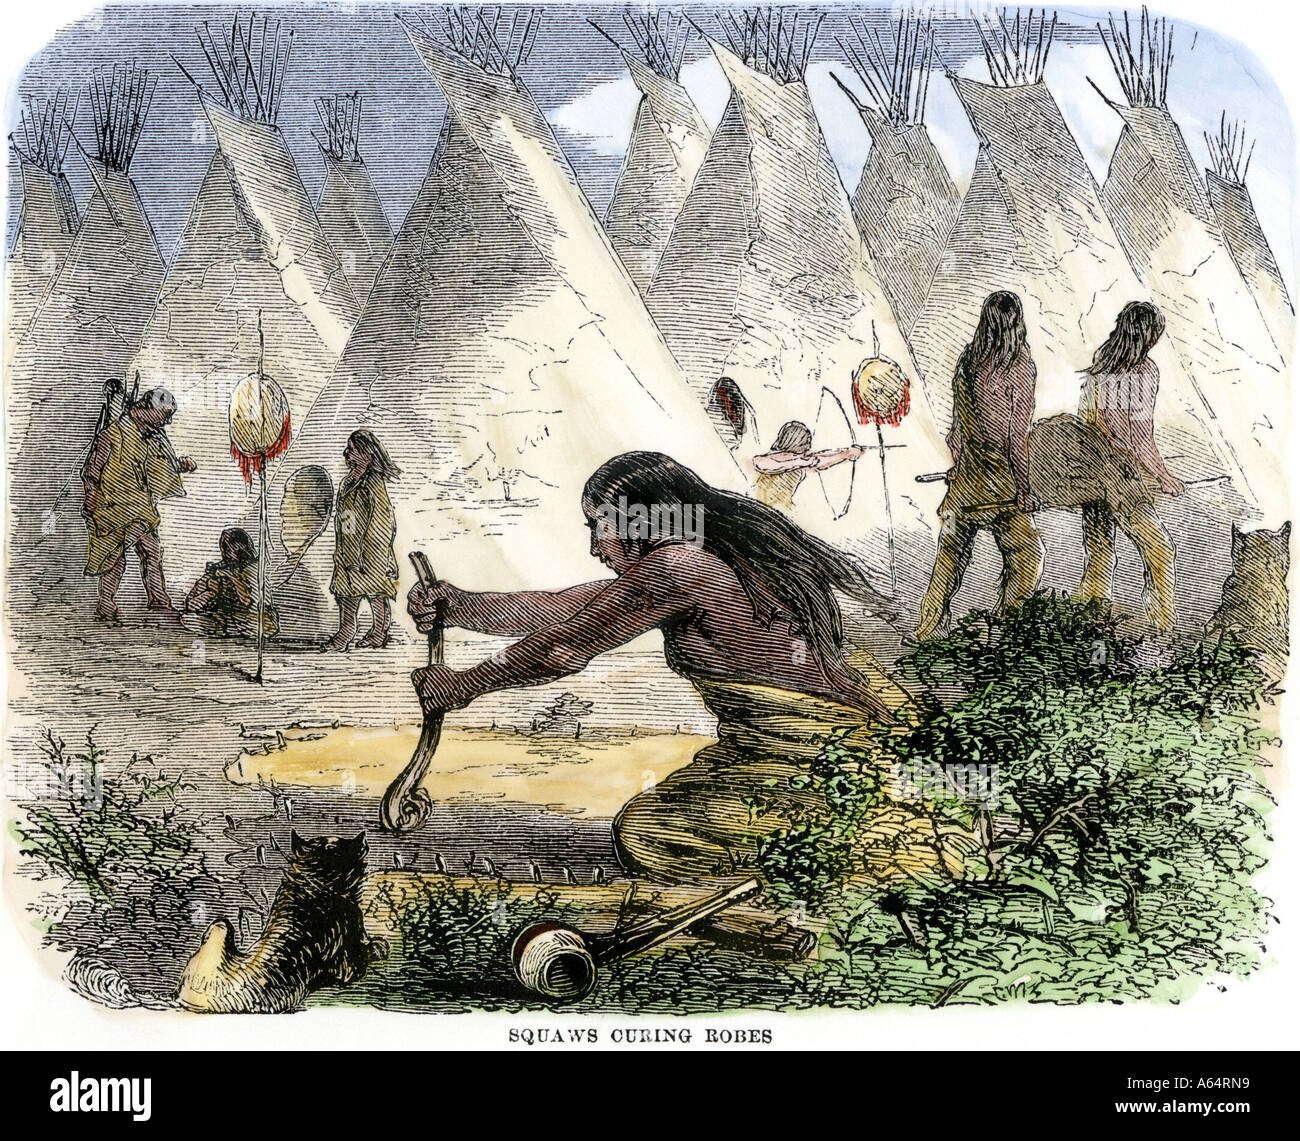 Native American women curing buffalo hides in a village of tipis. Hand-colored woodcut - Stock Image